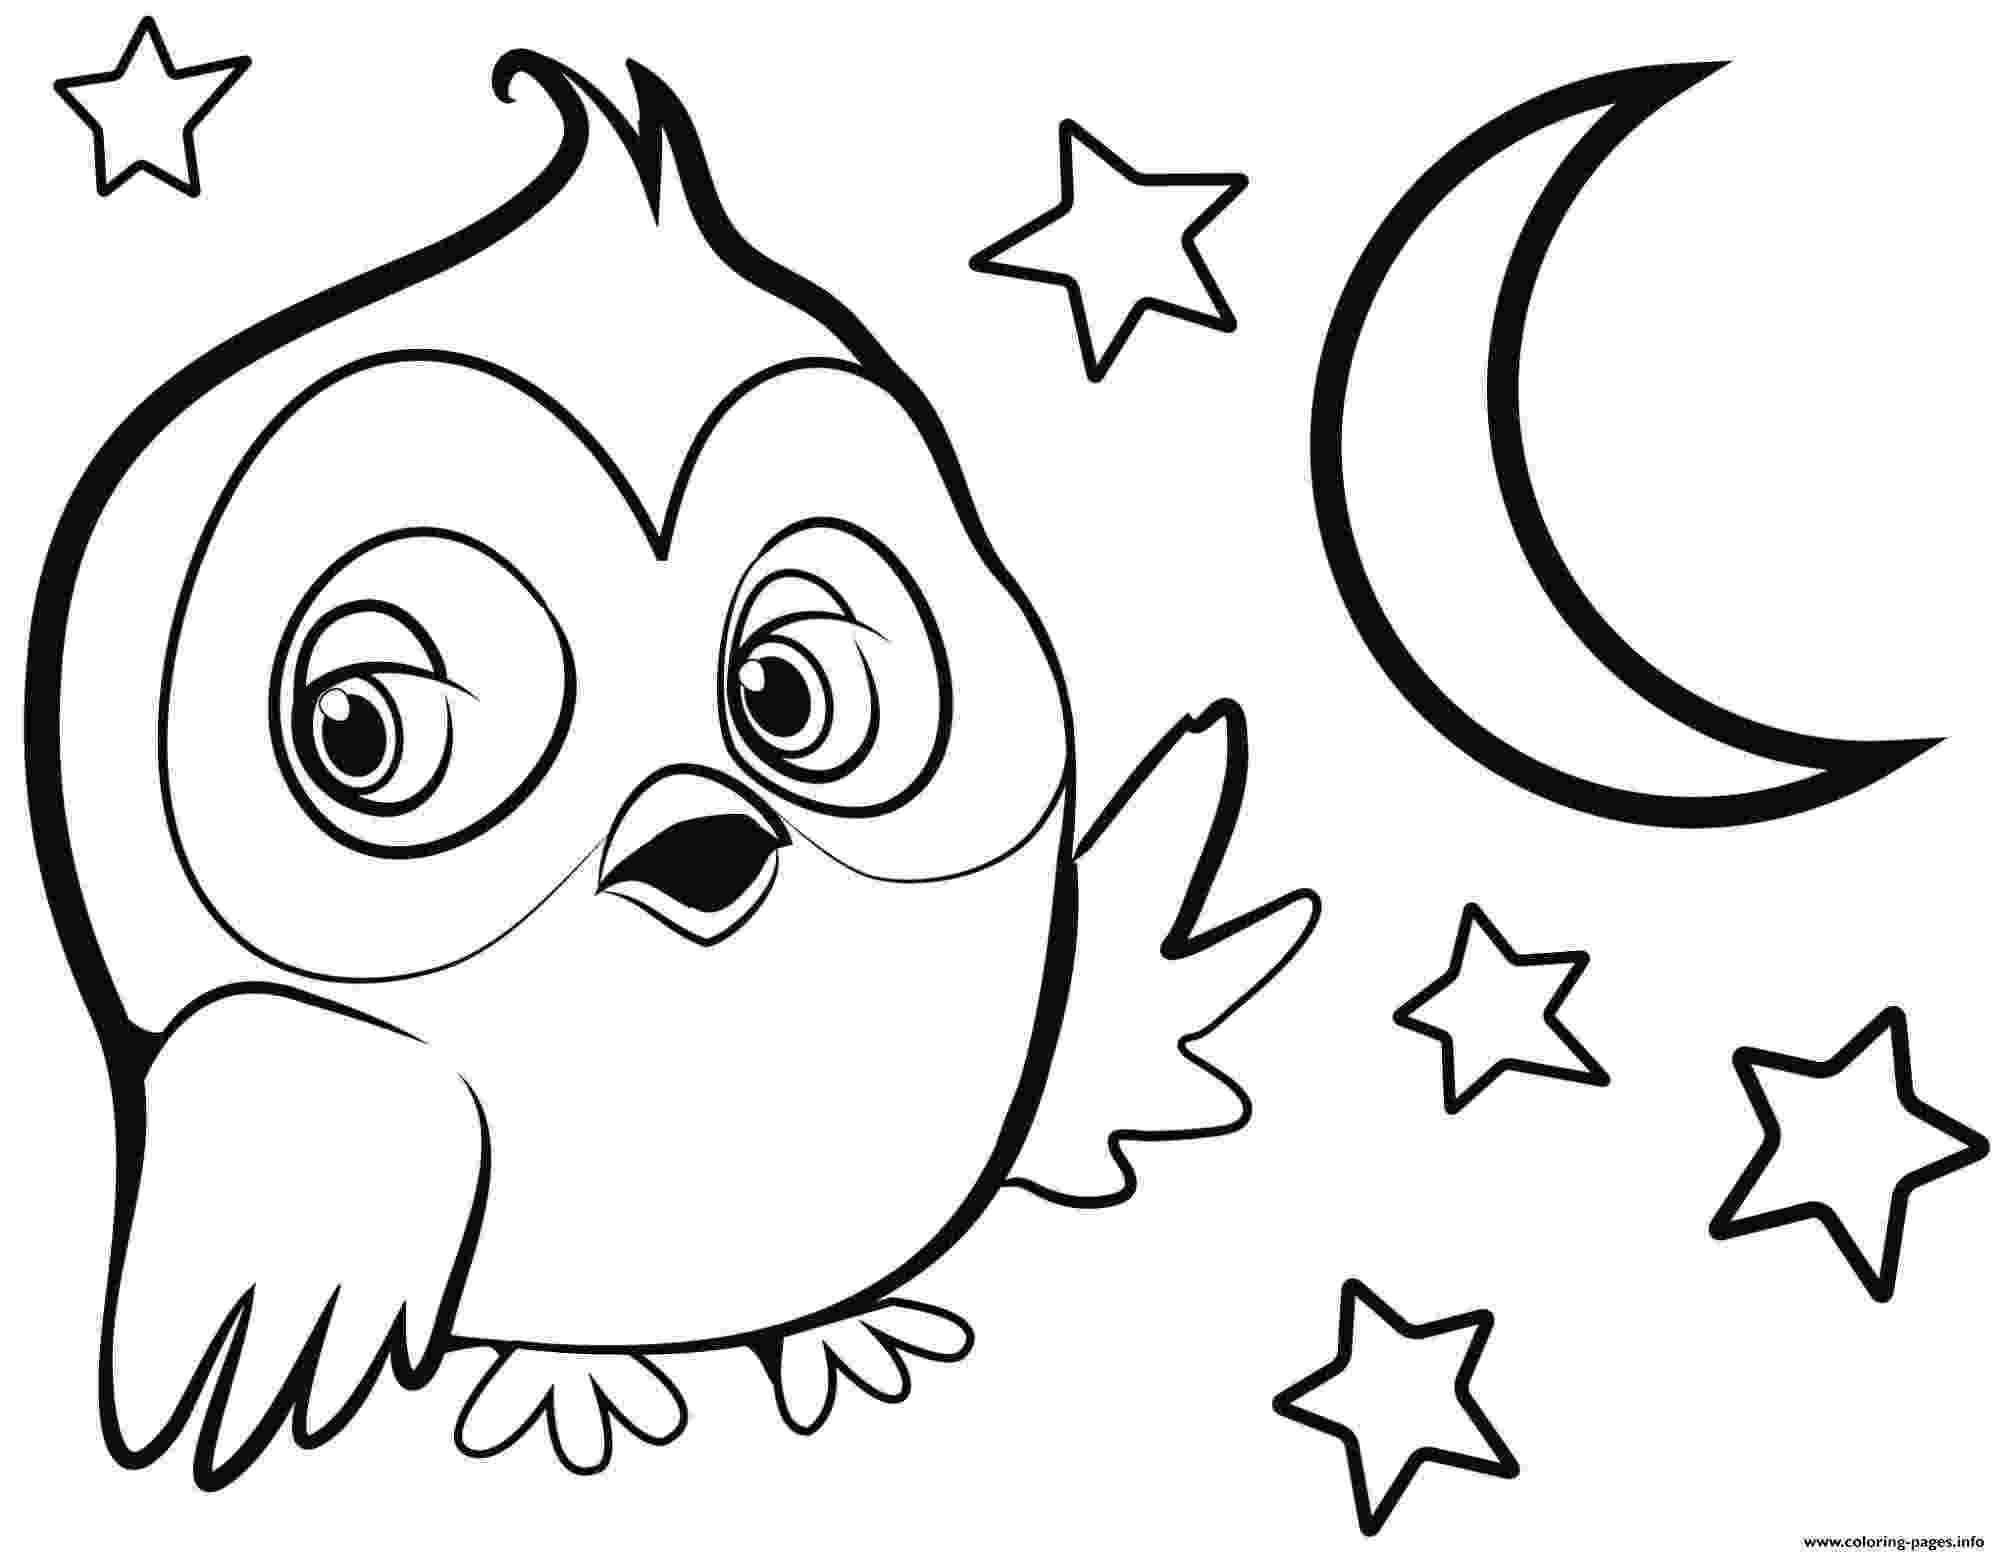 cute owl printable coloring pages baby owl coloring pages getcoloringpagescom coloring printable owl cute pages